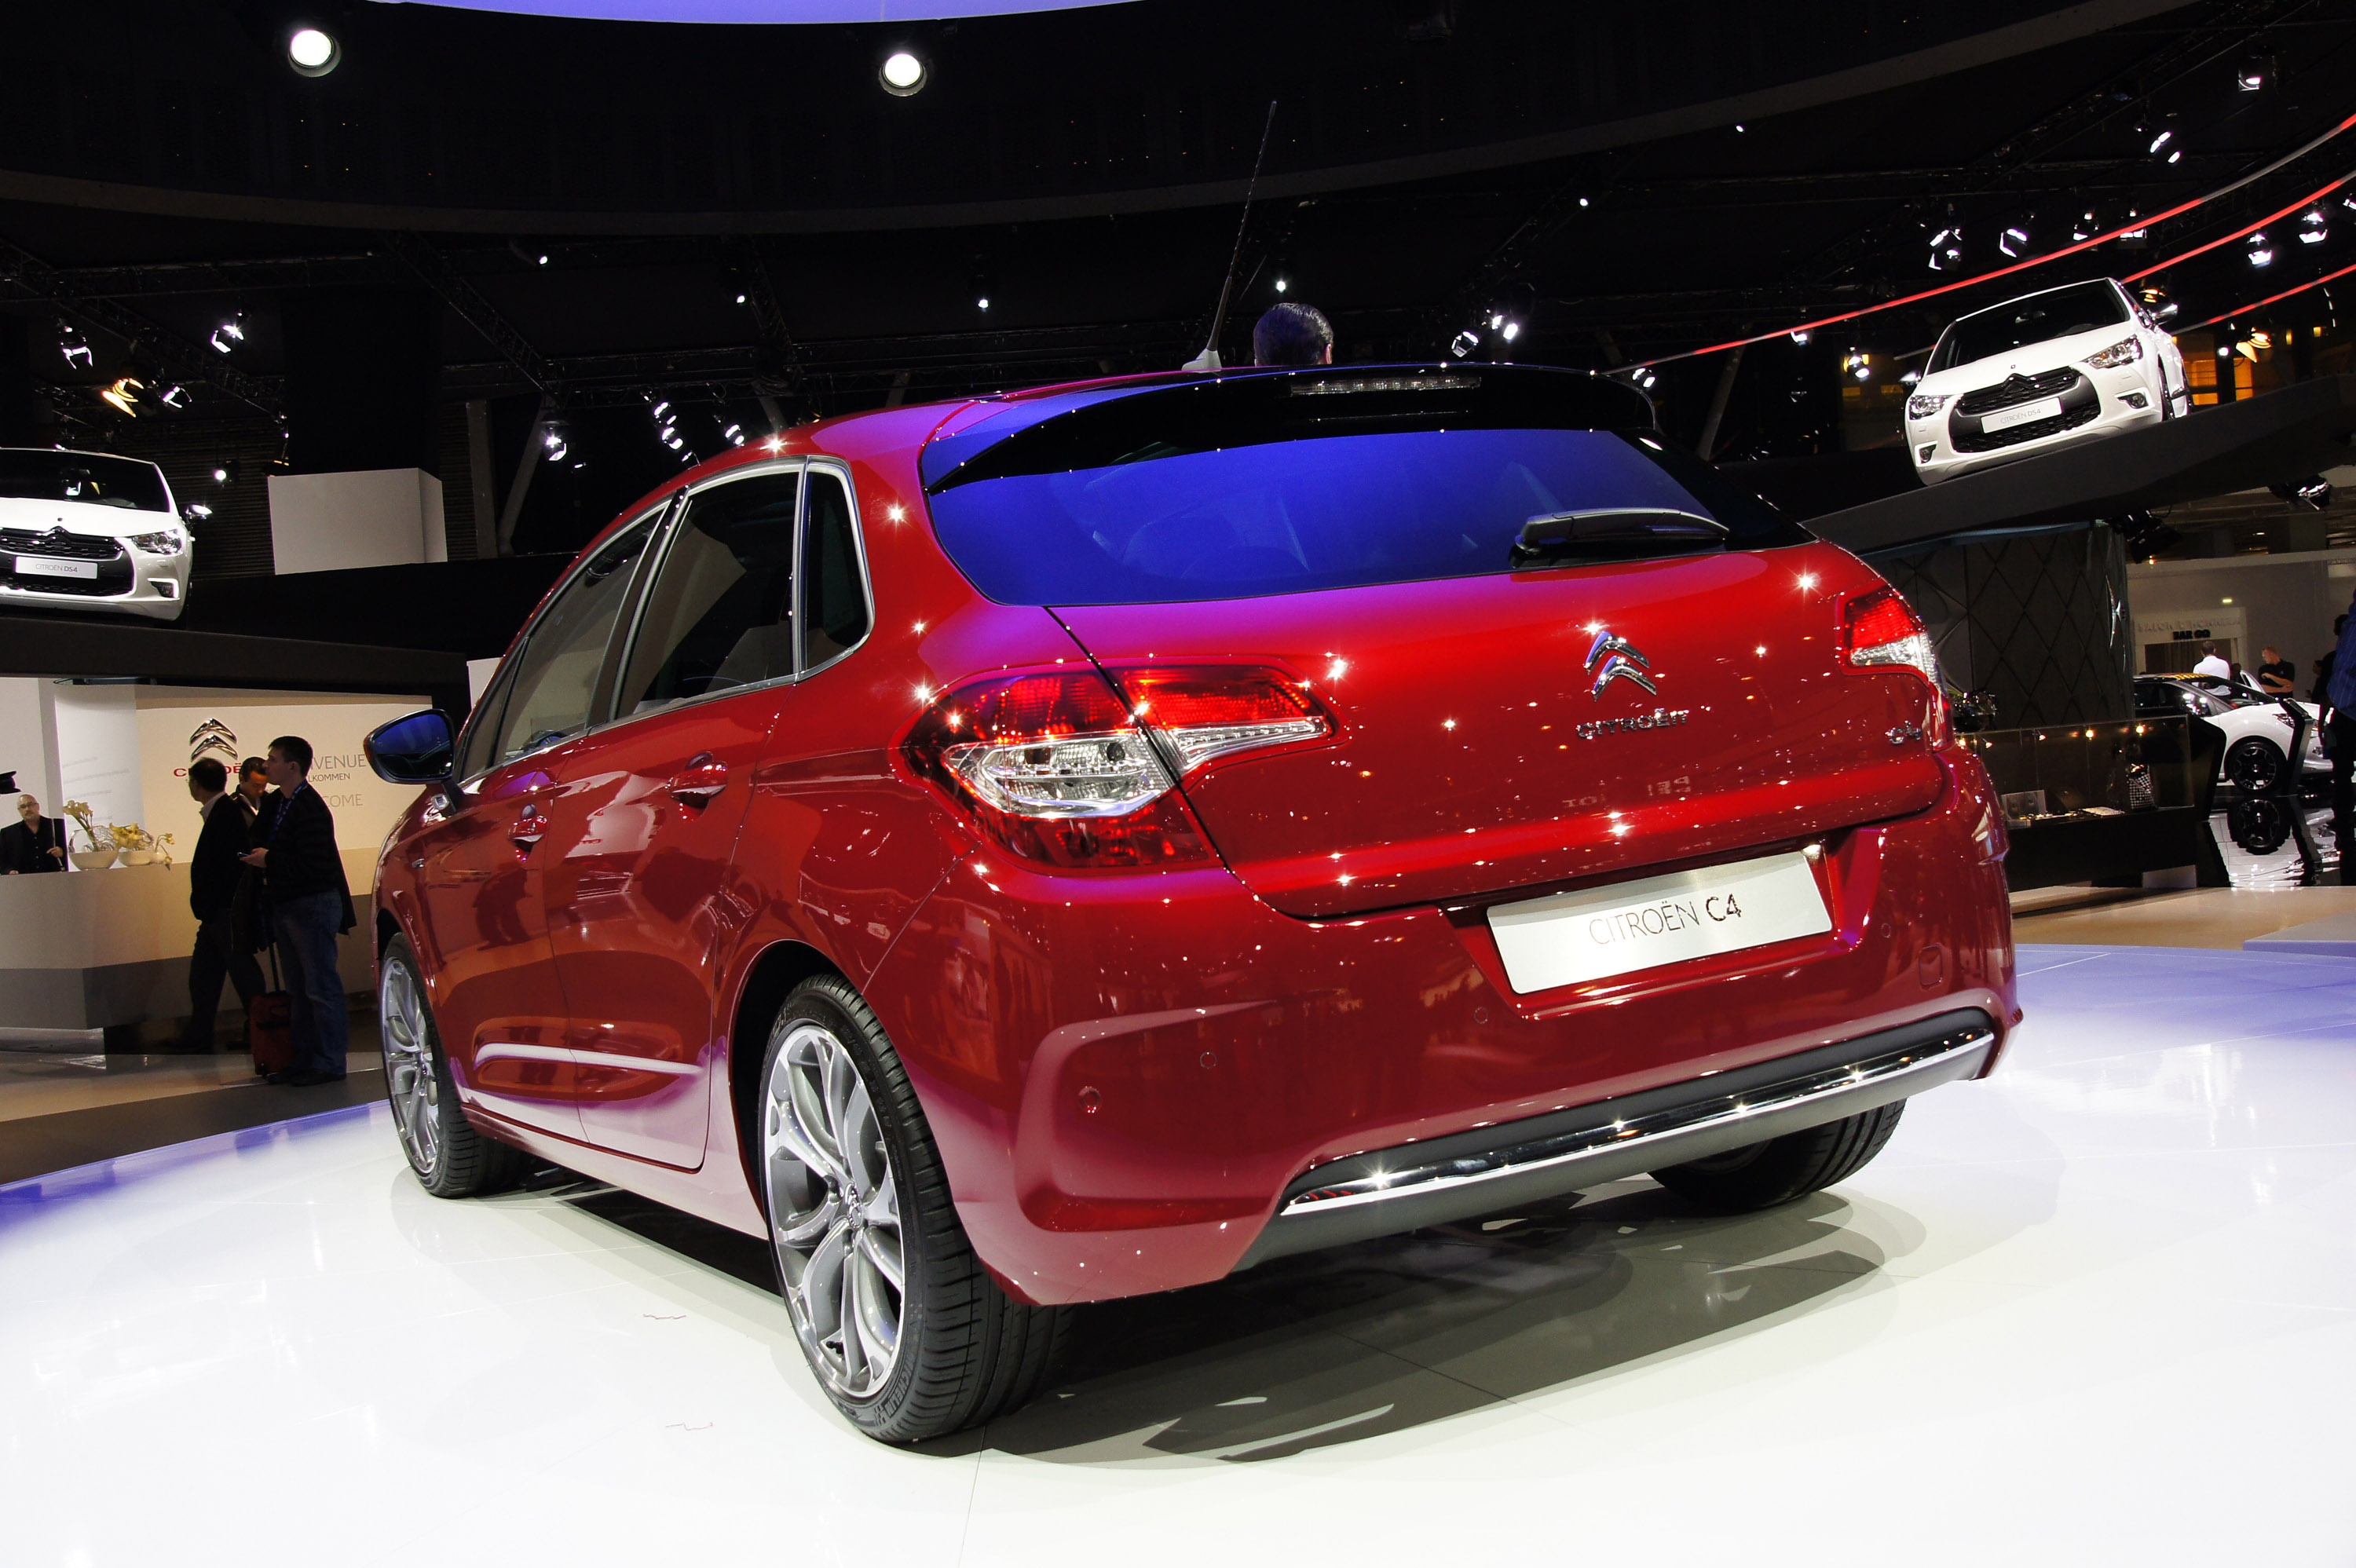 Citroen C4 Paris 2010 Picture 43184